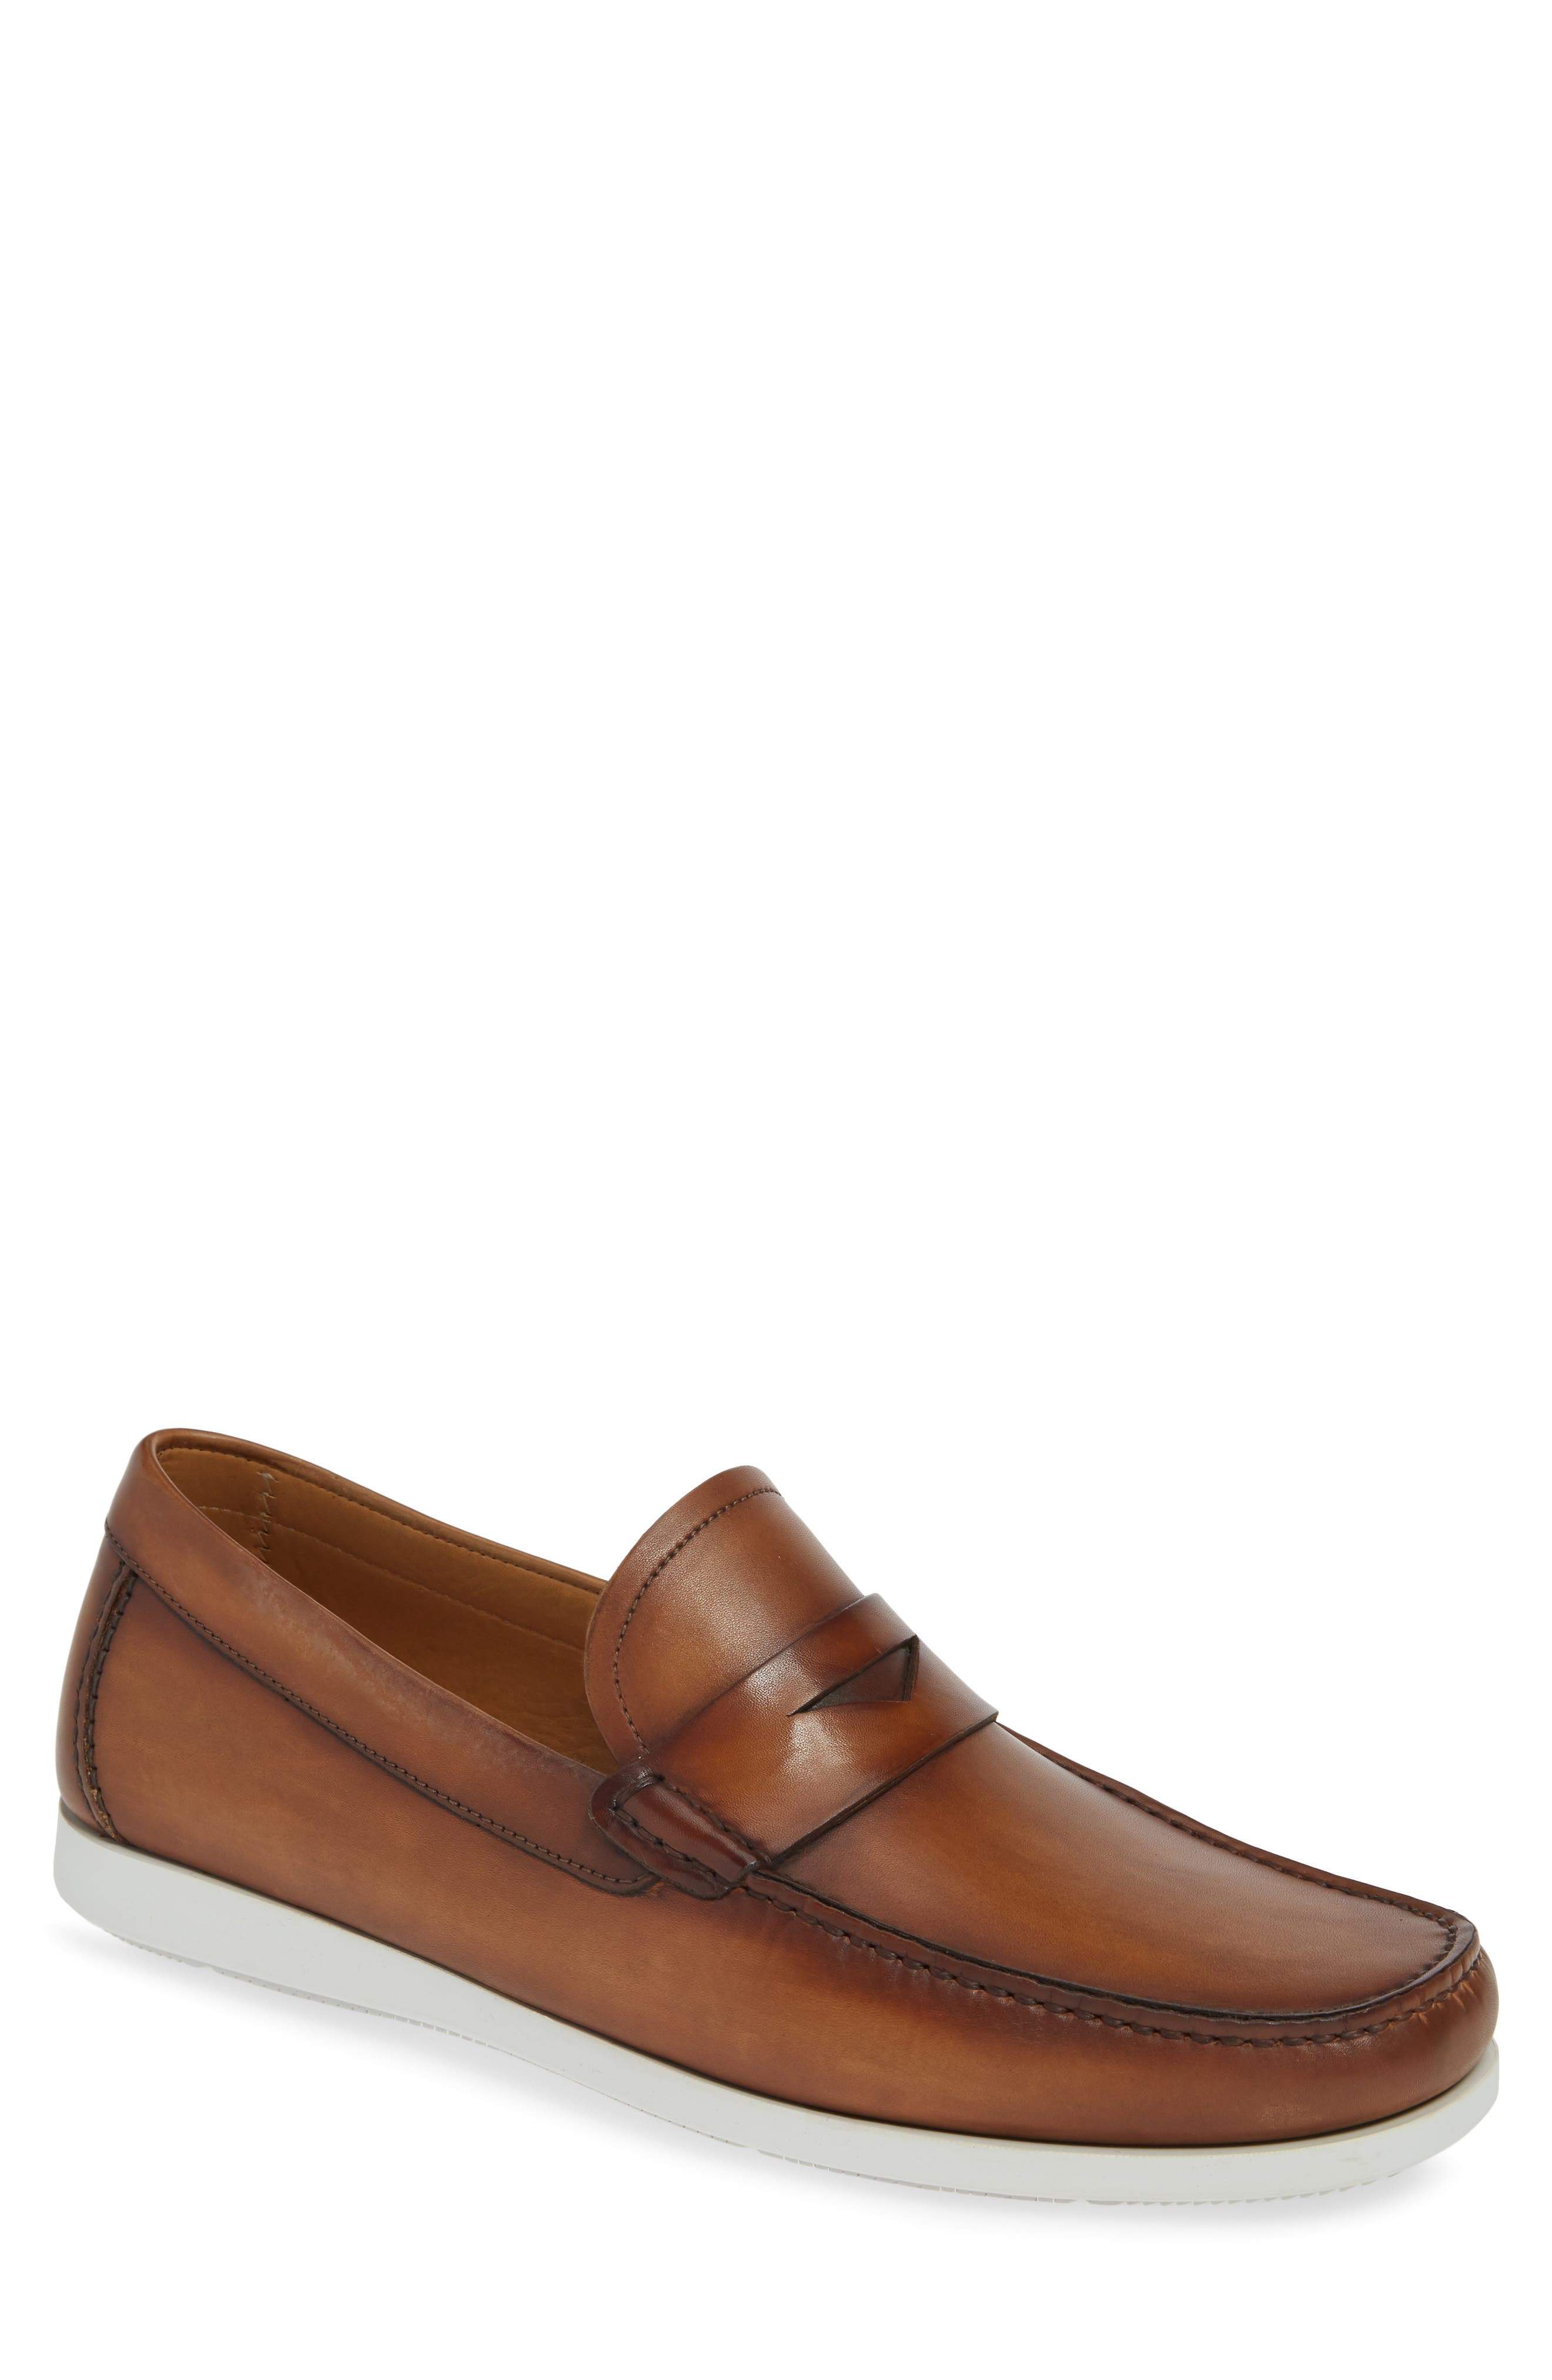 Laguna Penny Loafer, Main, color, TOBACCO LEATHER